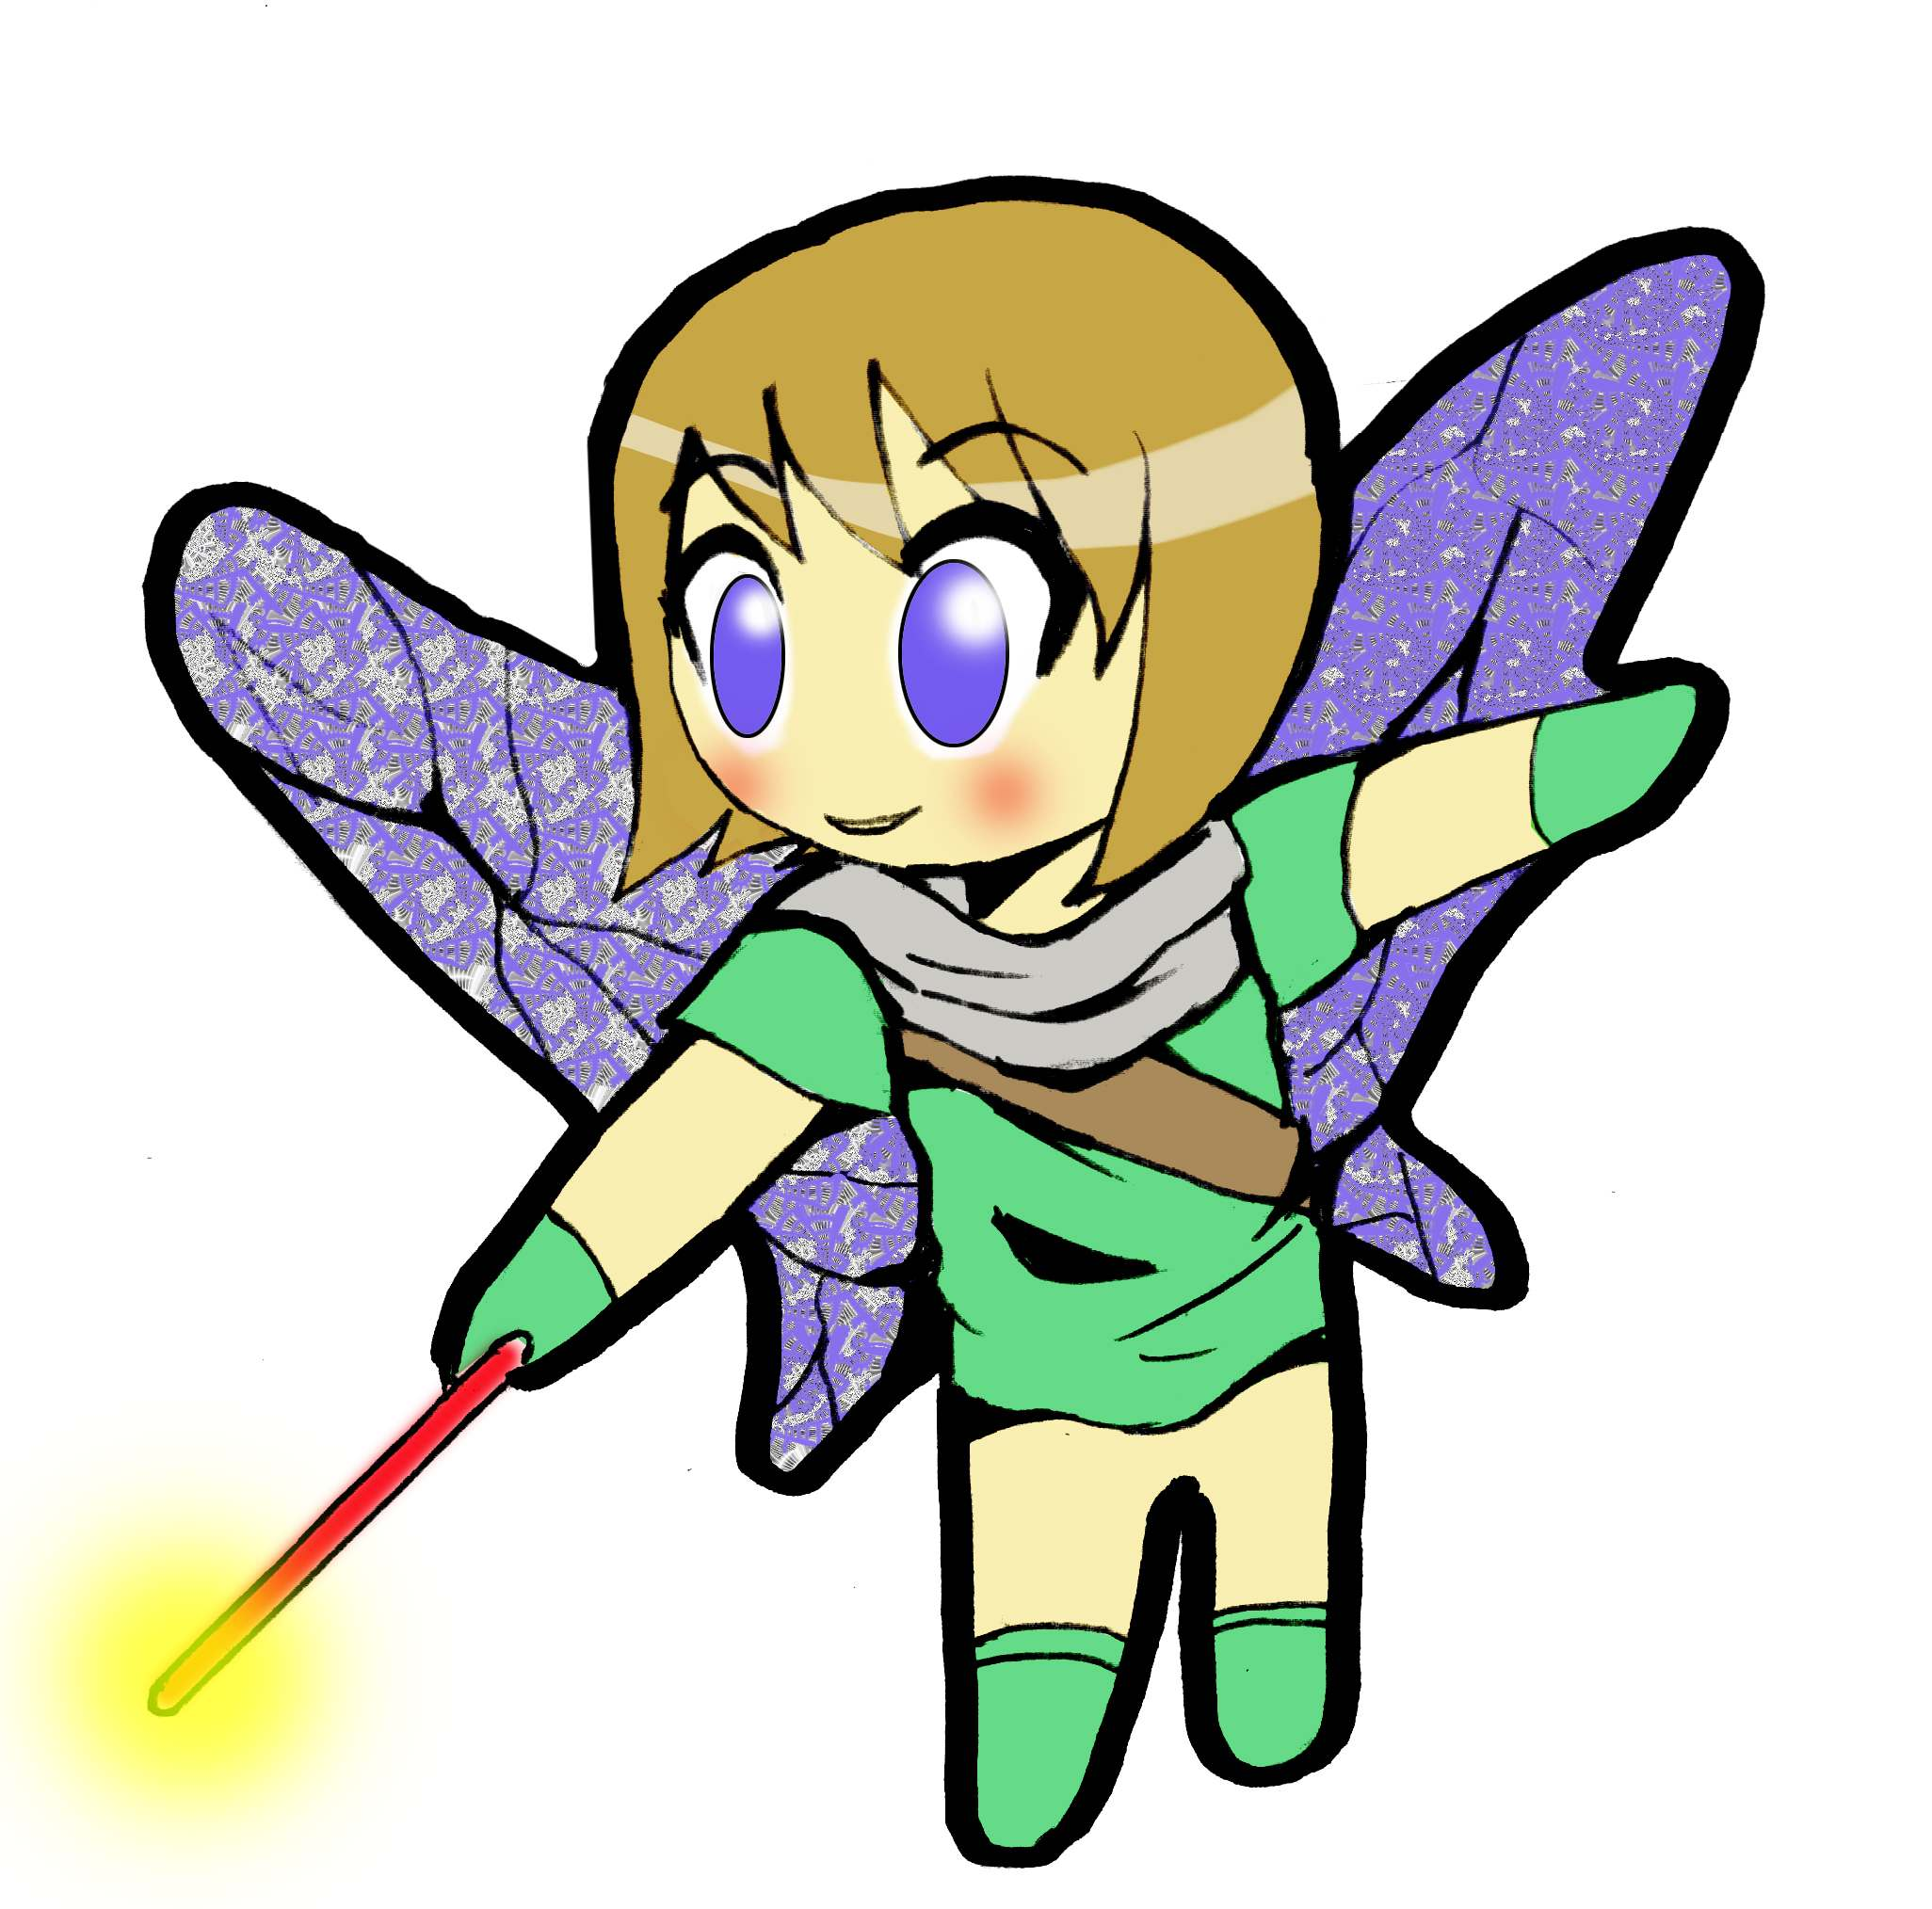 Anime clipart #5, Download drawings